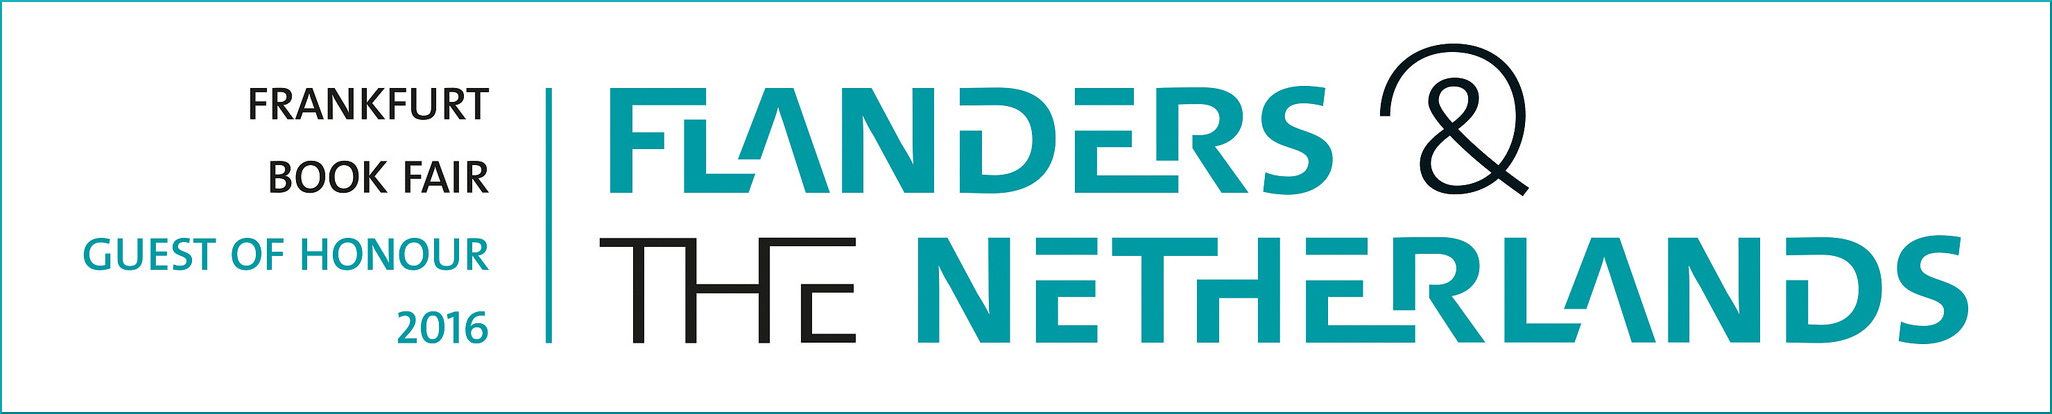 The logo of the guests of honour at the Frankfurt Book Fair 2016: the Netherlands & Flanders